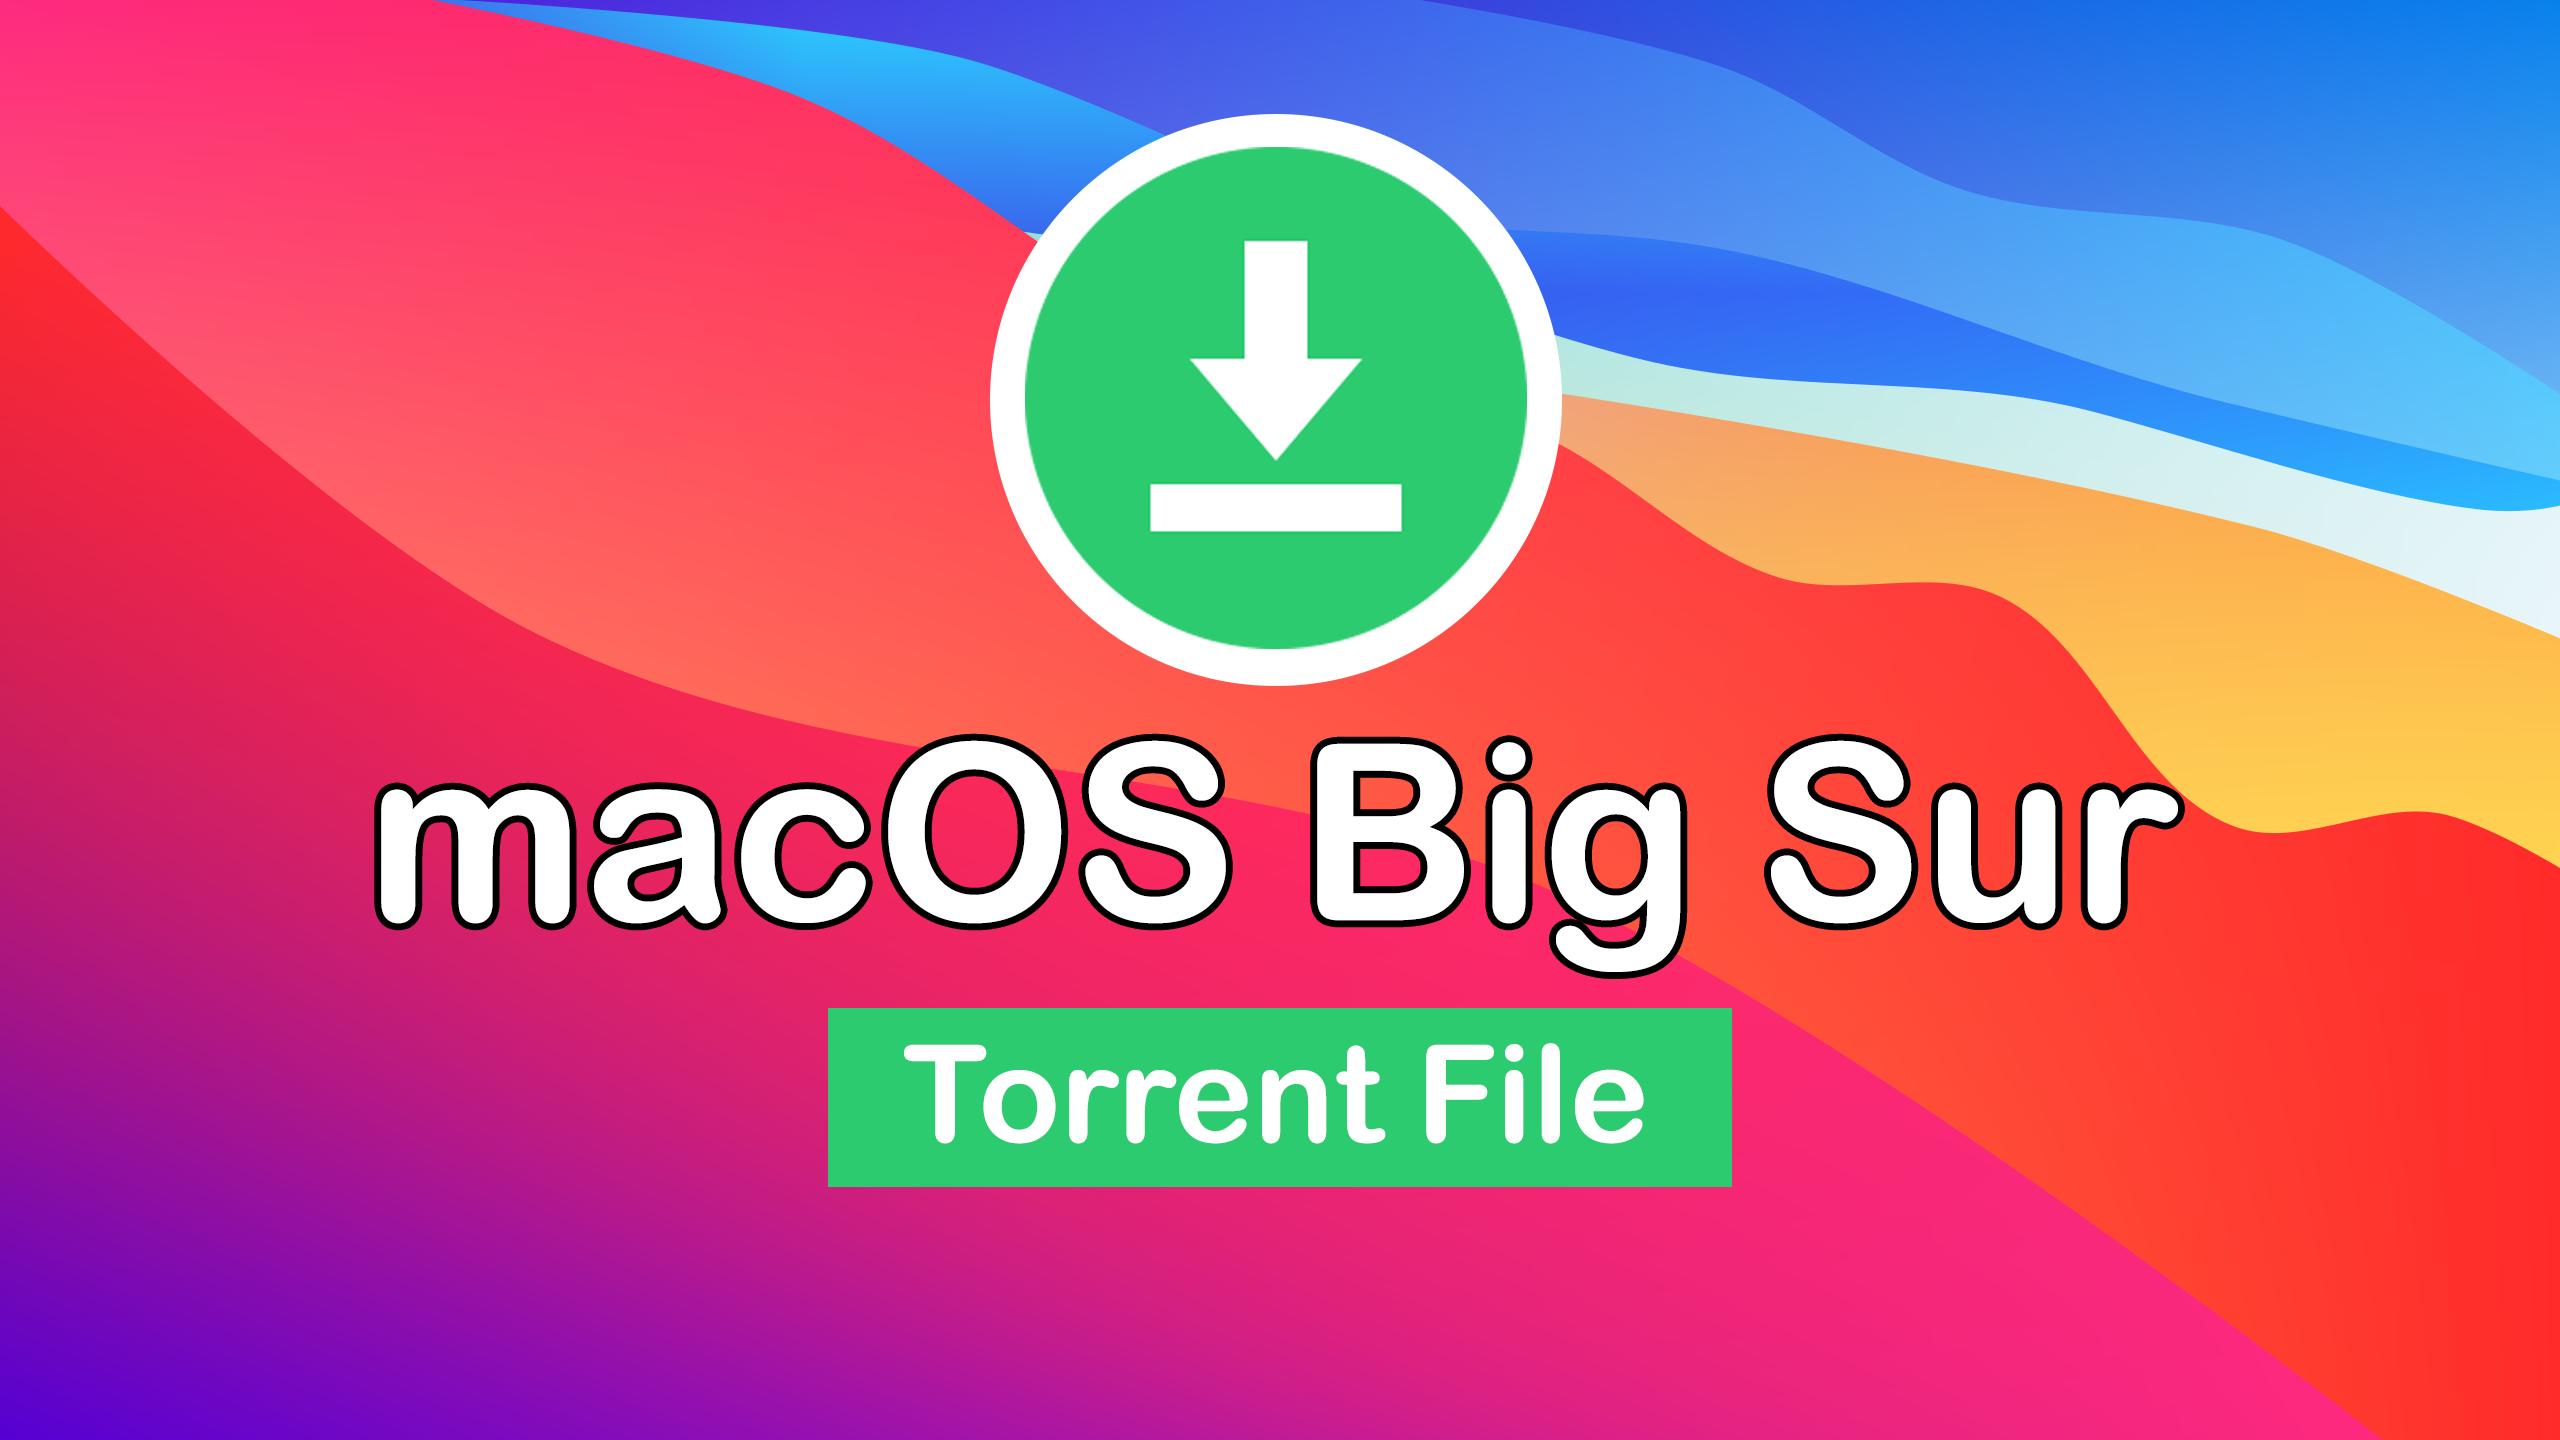 Download macOS Big Sur Torrent Image